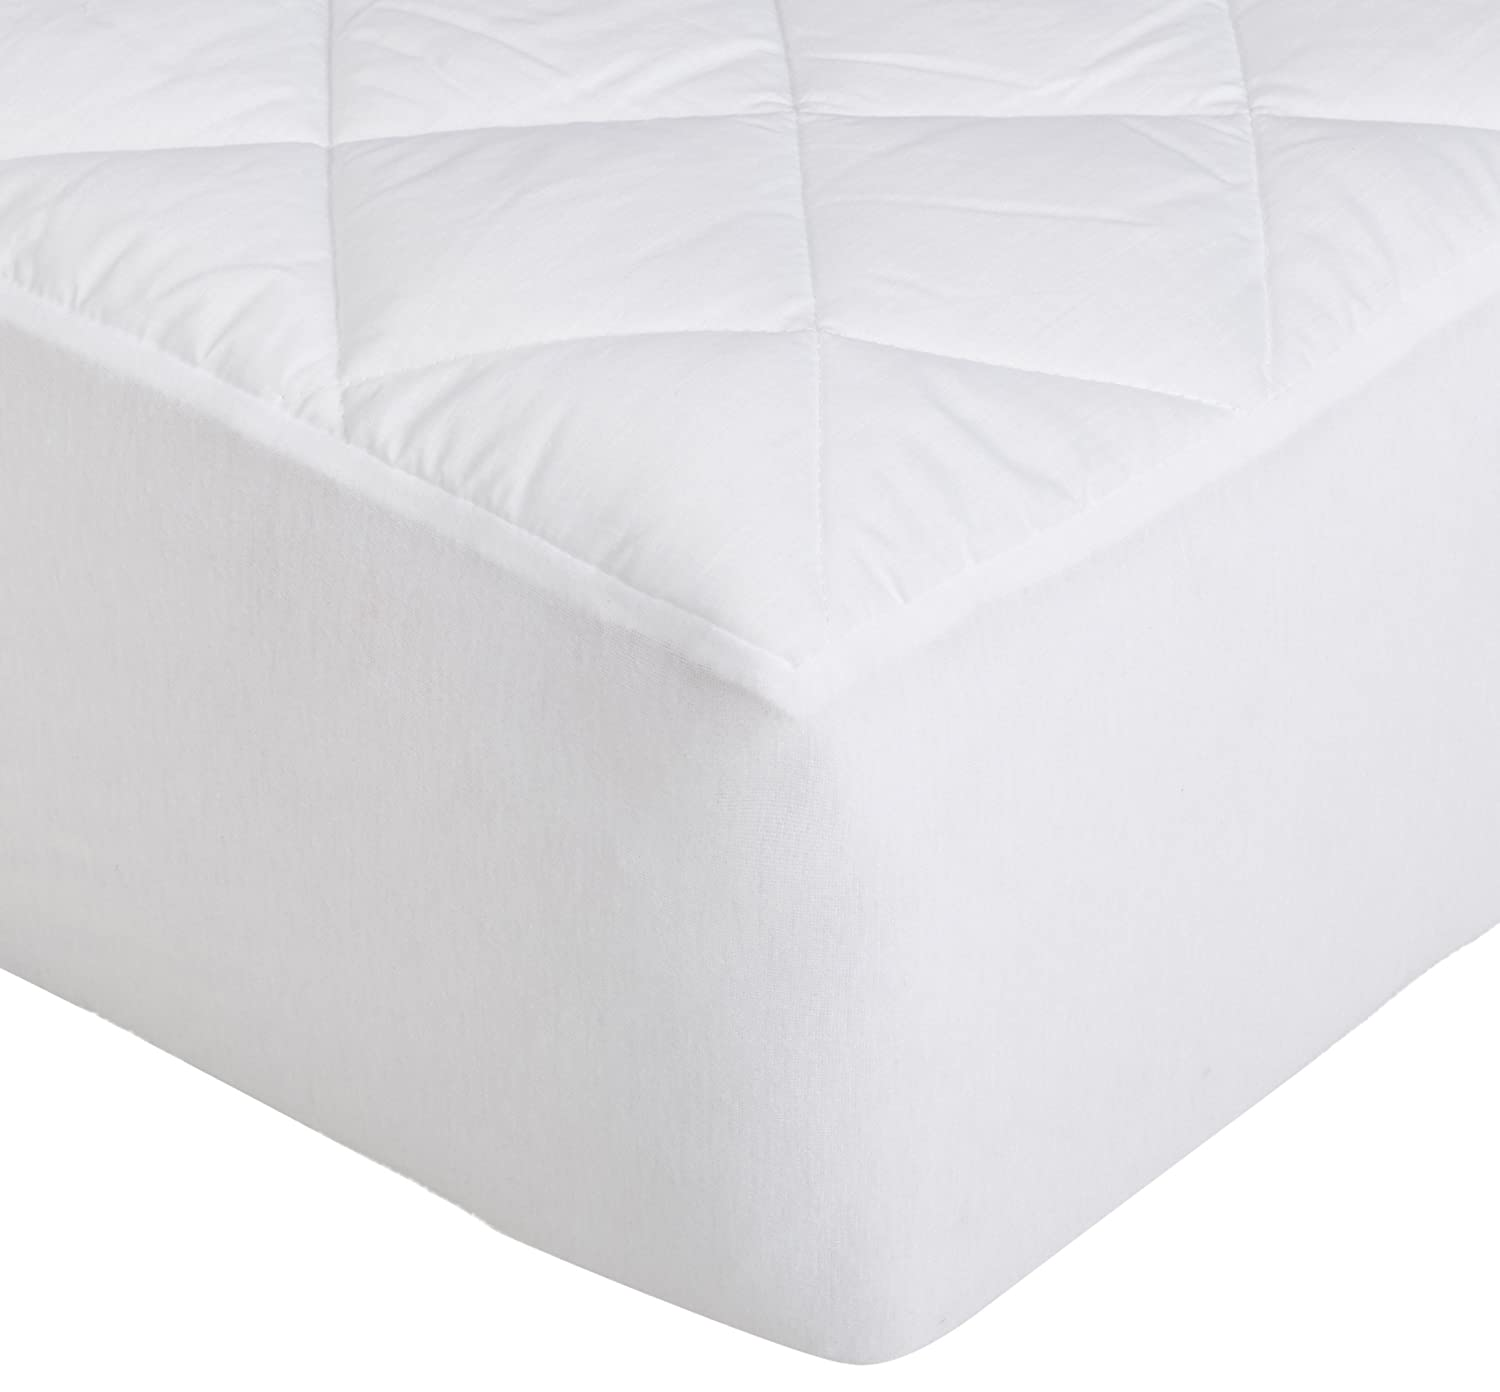 Basics Hypoallergenic Quilted Mattress Topper Pad Cover Twin 18 Inch Deep